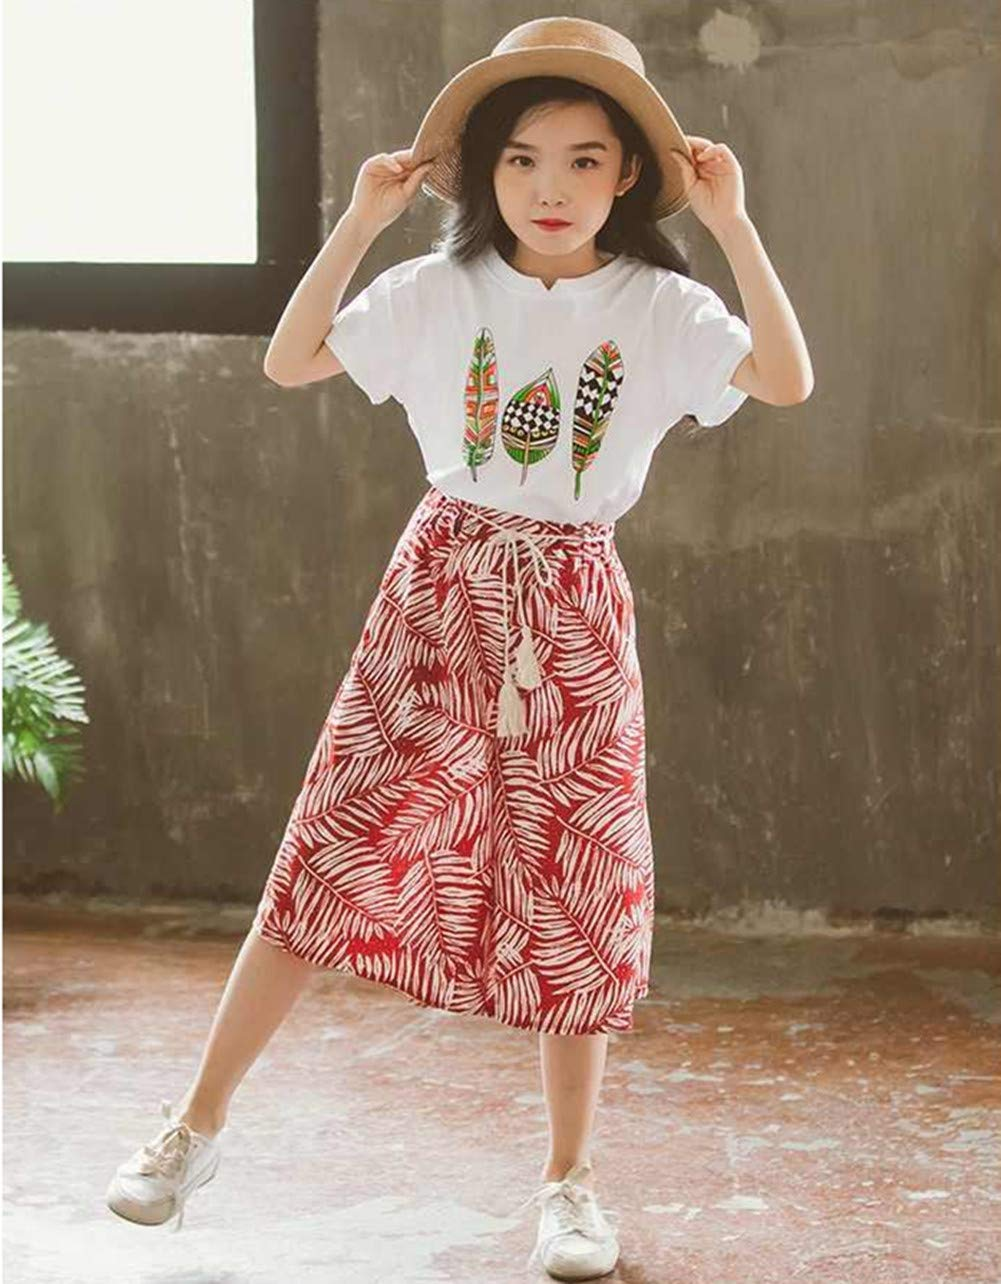 FTSUCQ Girls Floral Leaf Printed Shirt Top + Wide Leg Pants,Red 160 by FTSUCQ (Image #3)